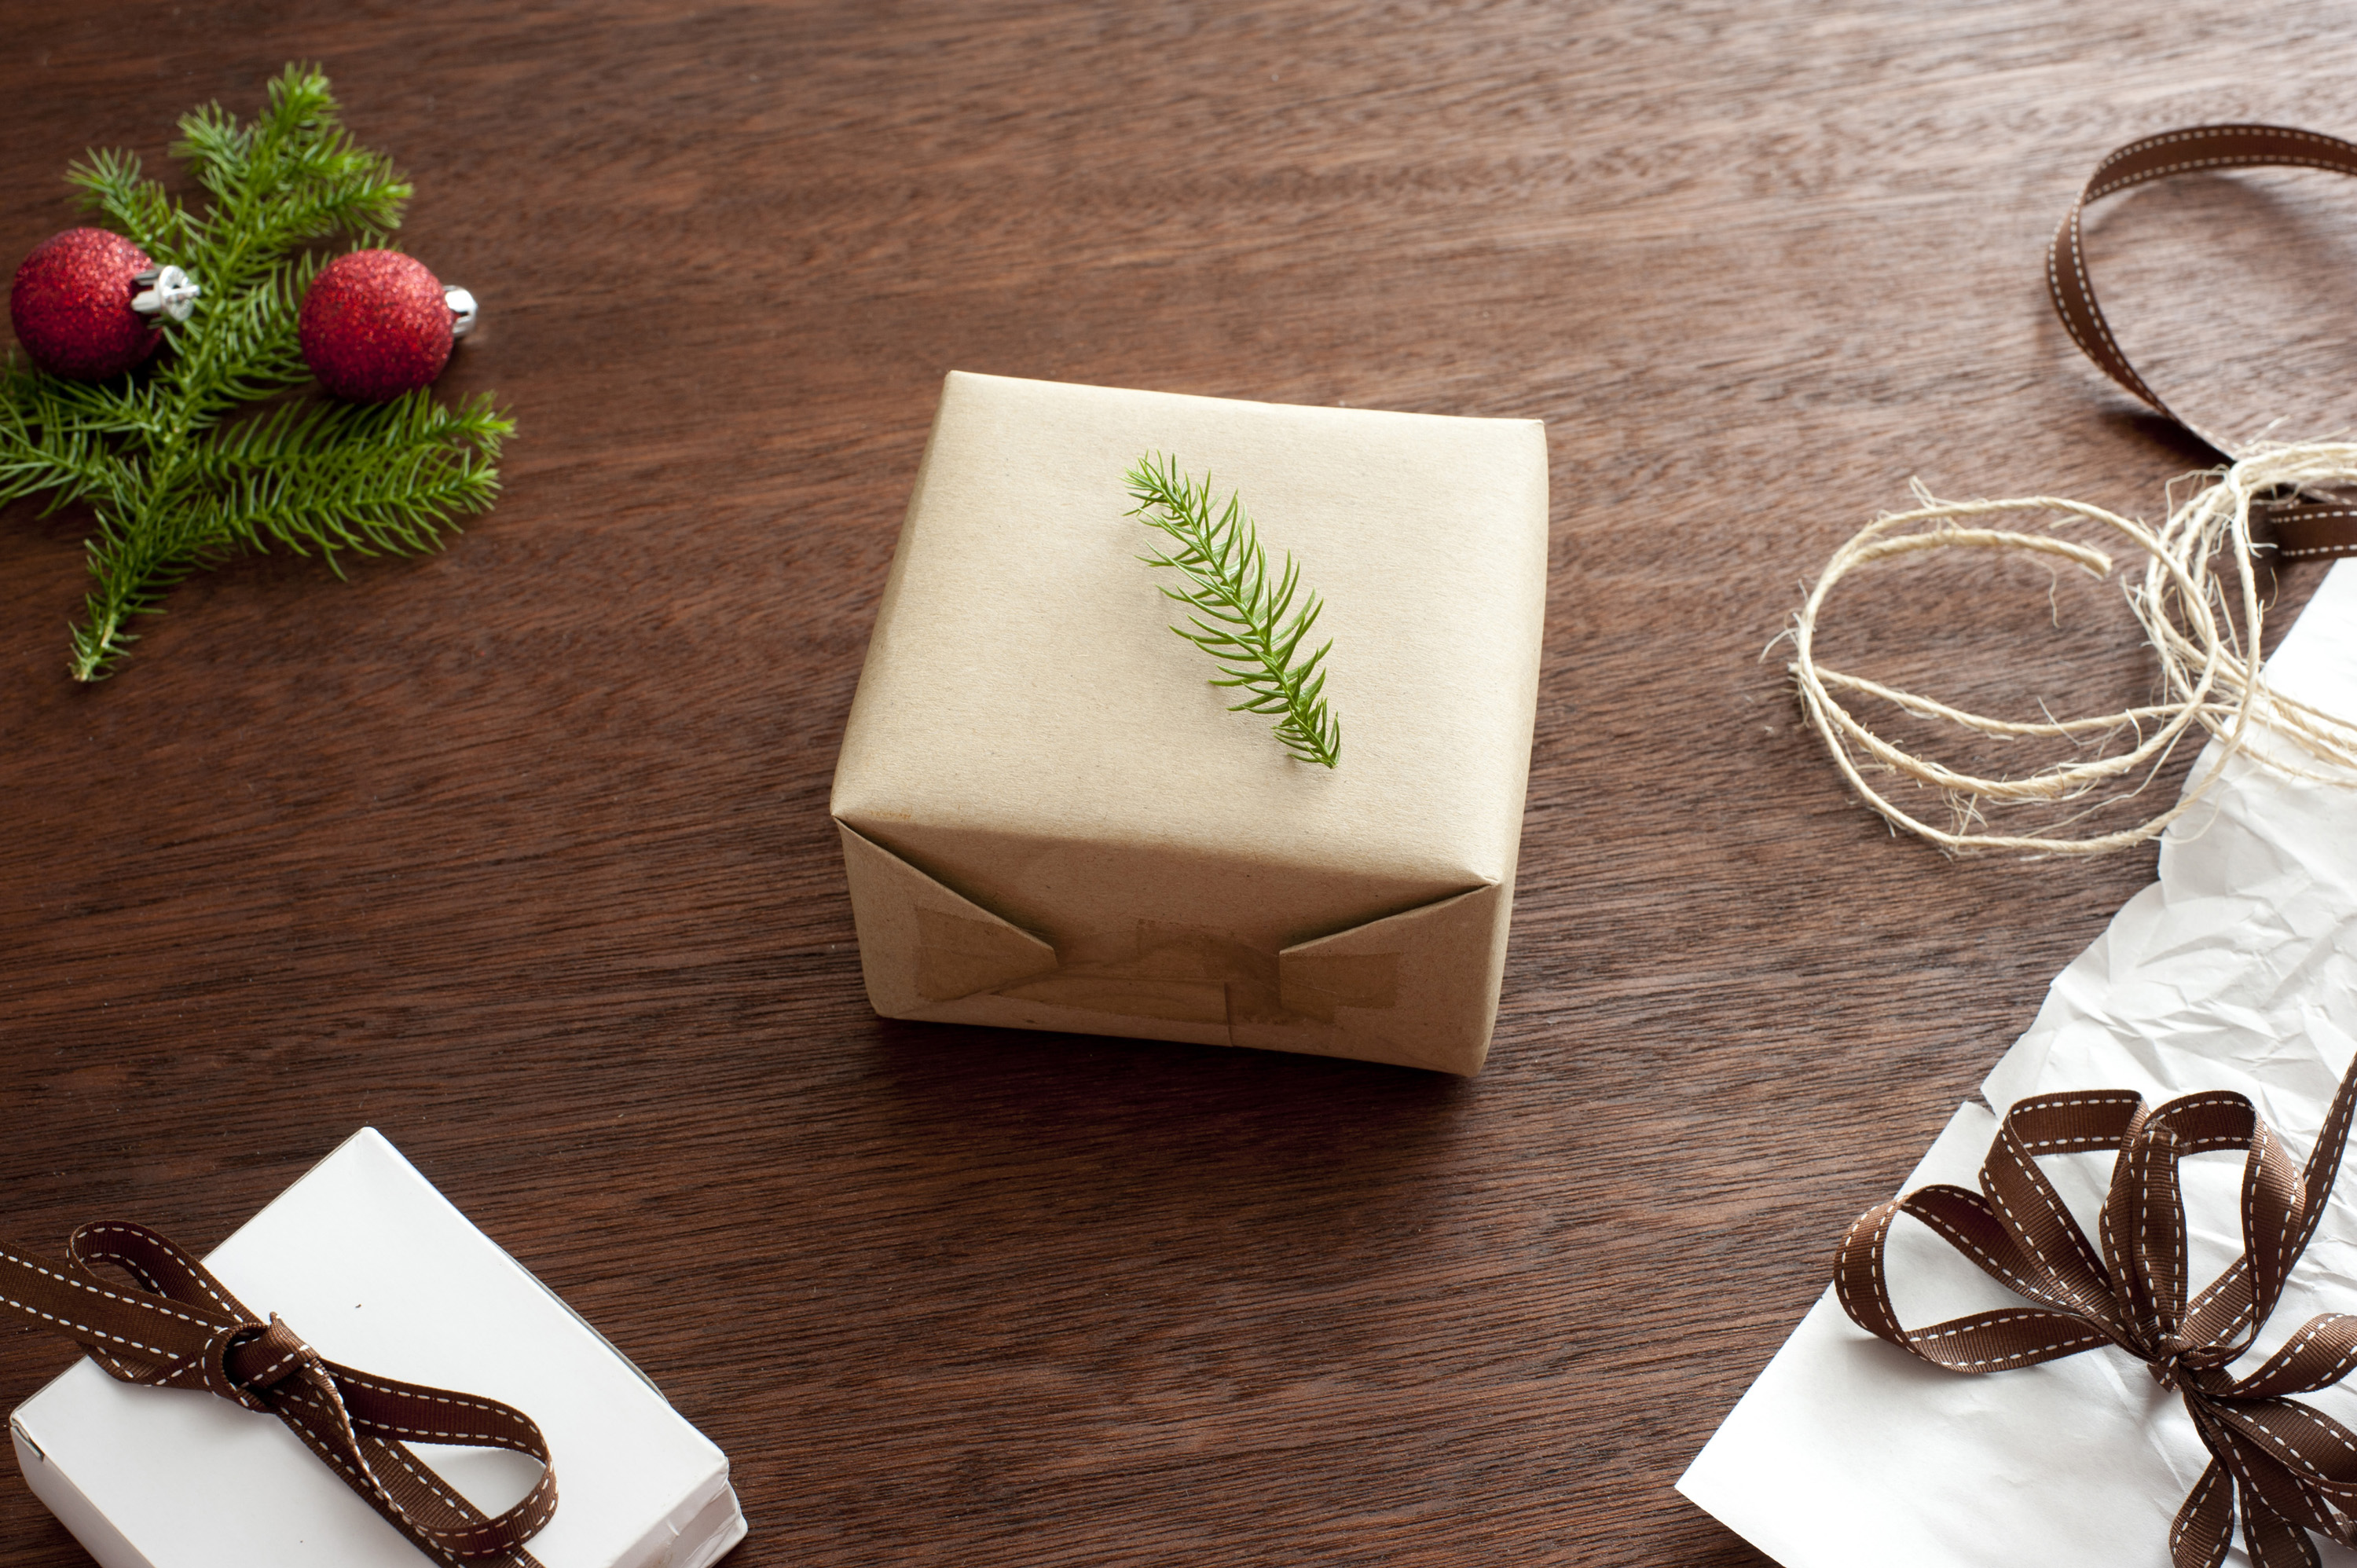 Photo Of Wrapped Present With Fir Tree Decoration Free